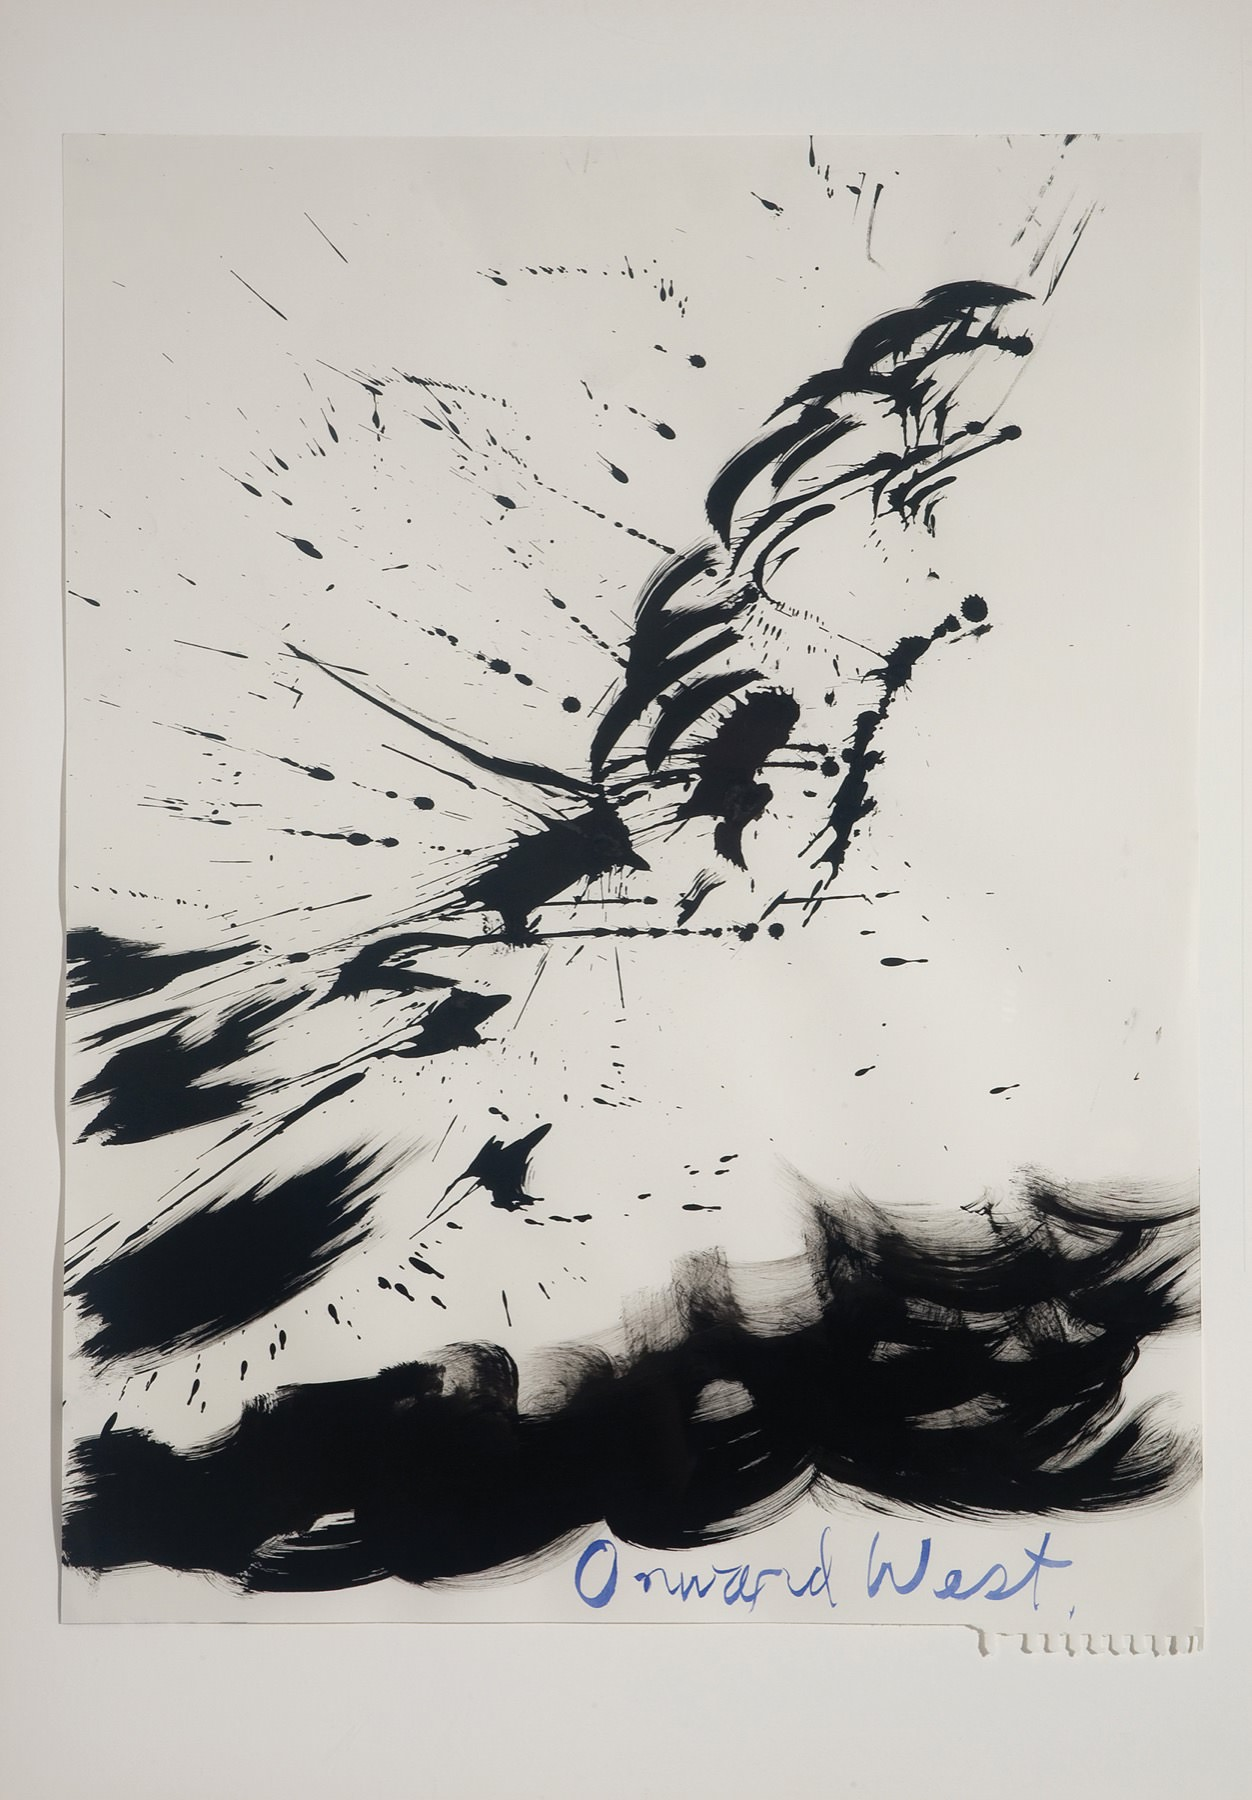 Image of Raymond Pettibon, Untitled (Onward West), 2003